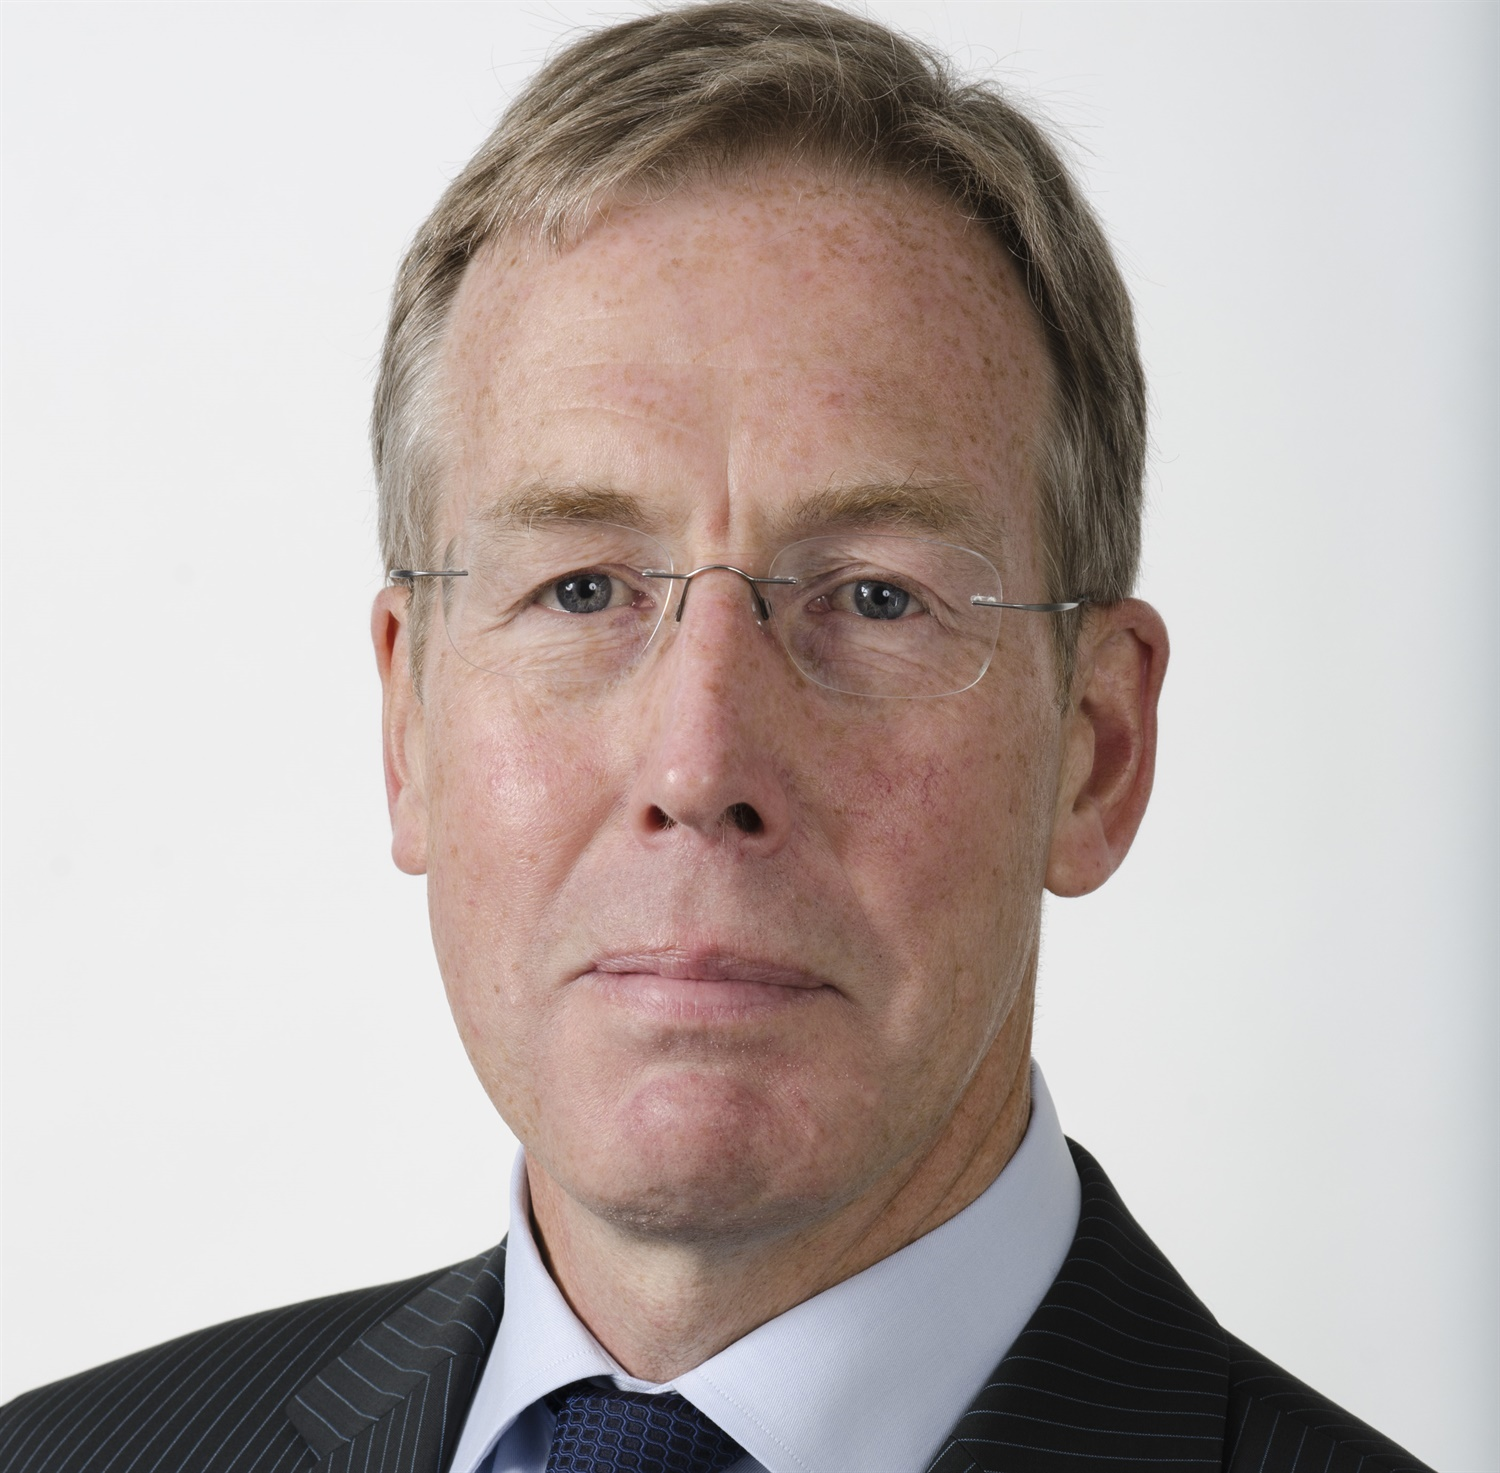 CQC Chief Exec And 'exceptional Leader' David Behan To